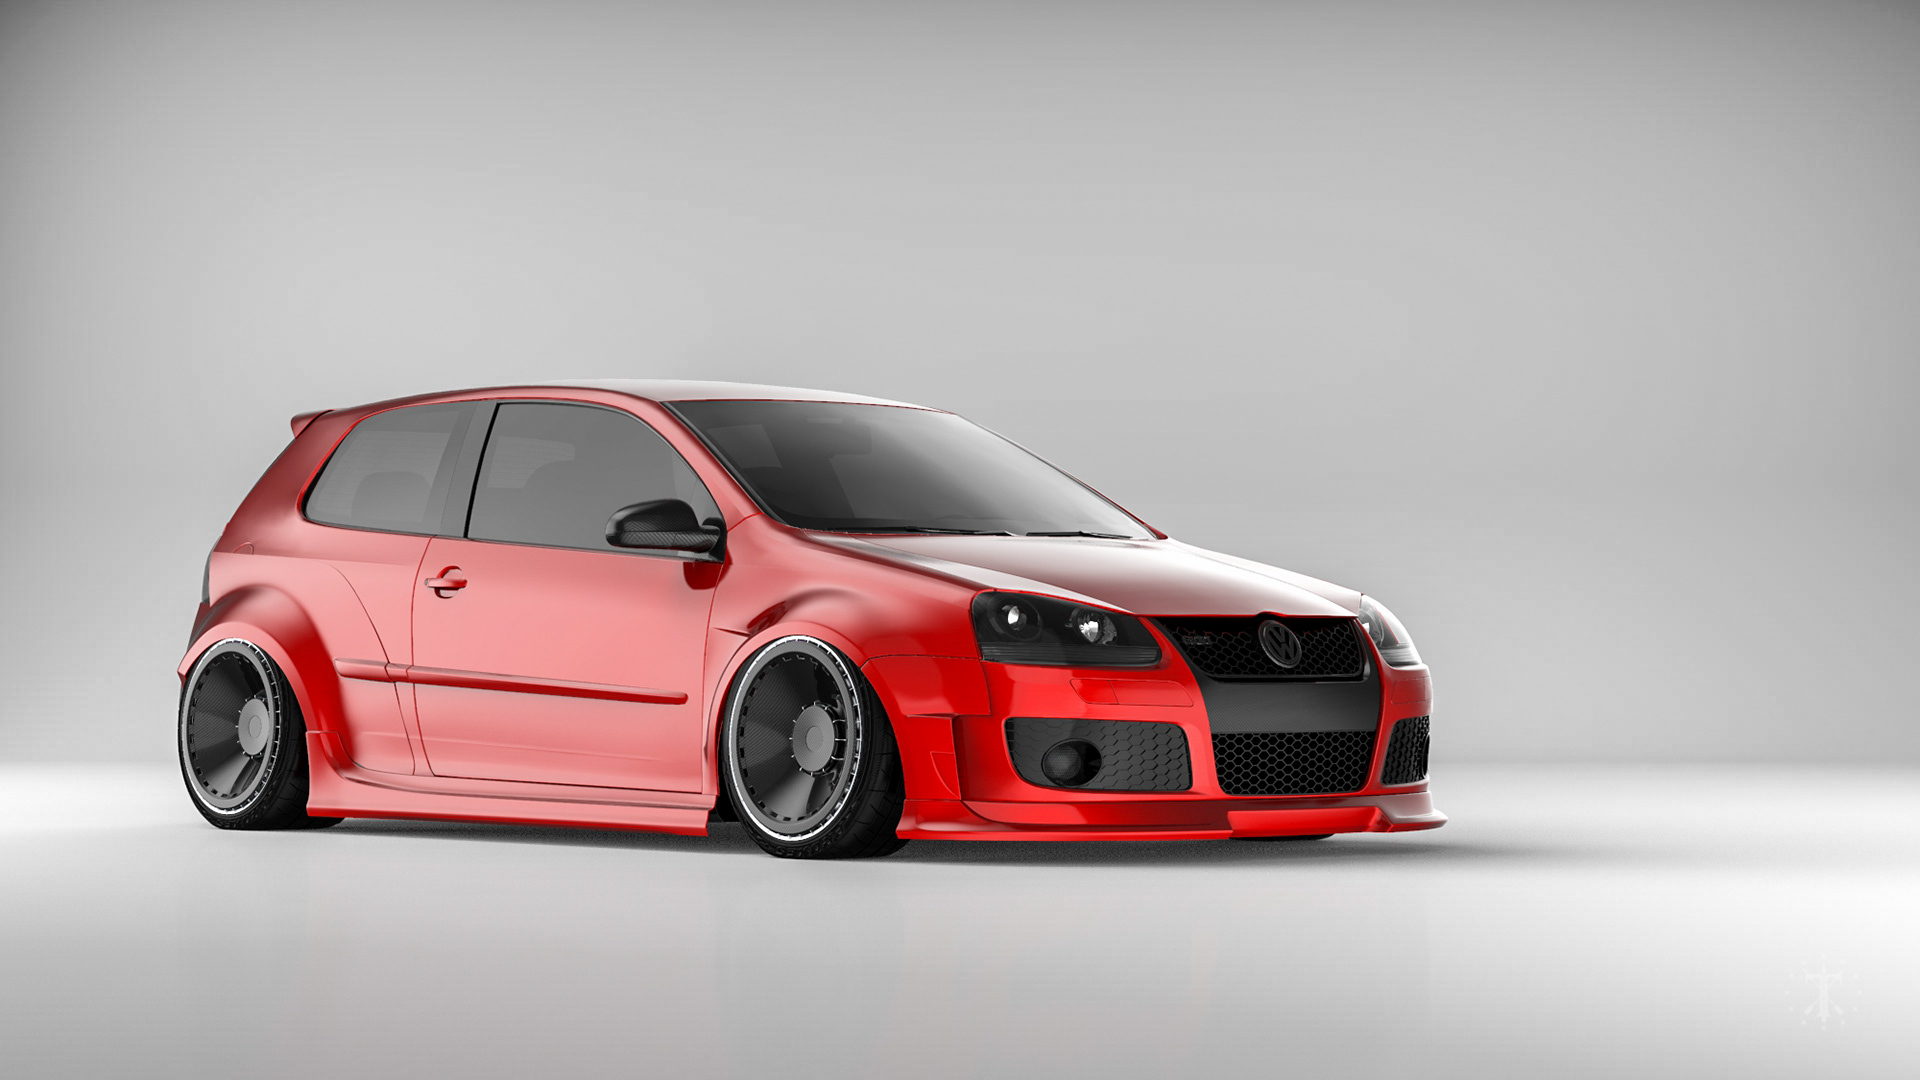 kasim tlibekov tlibekua vw golf v gti widebody. Black Bedroom Furniture Sets. Home Design Ideas